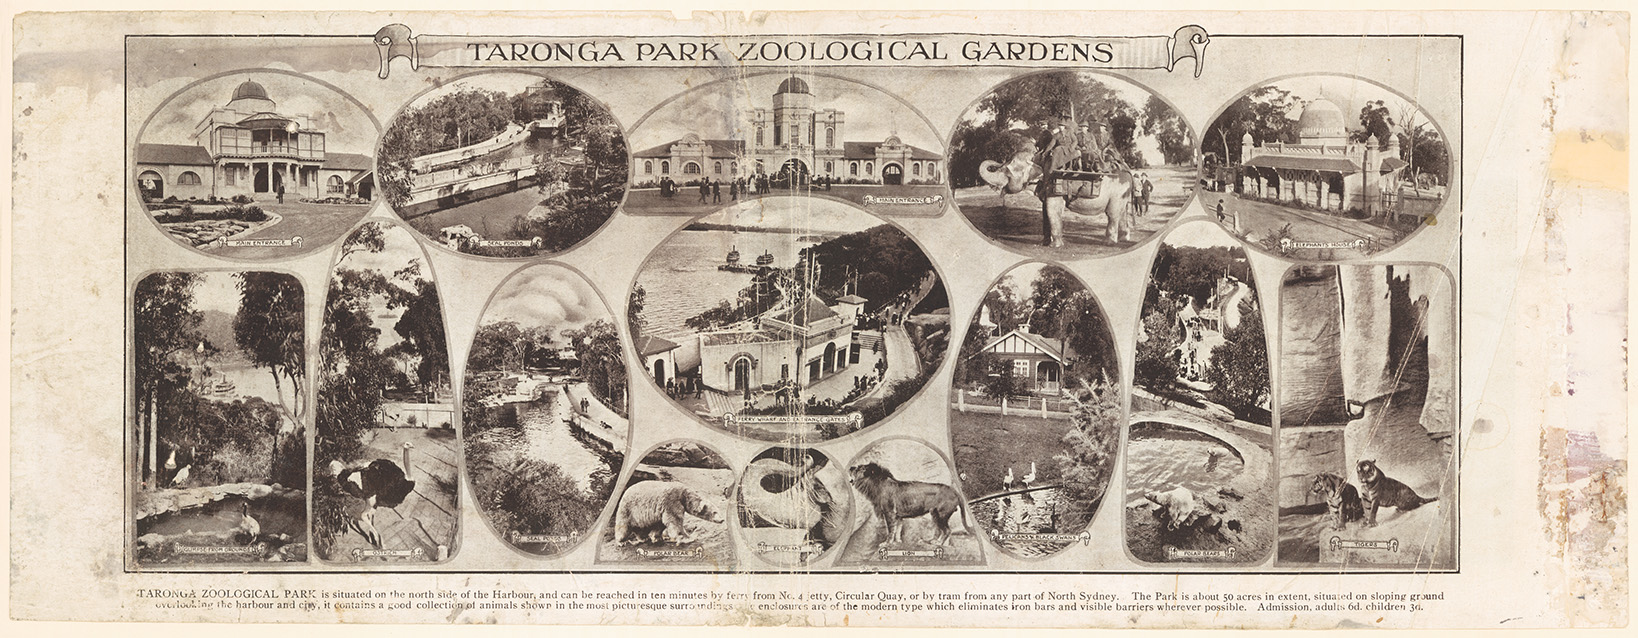 Taronga Park Zoological Gardens, H Phillip, c.1917. From NRS 20499